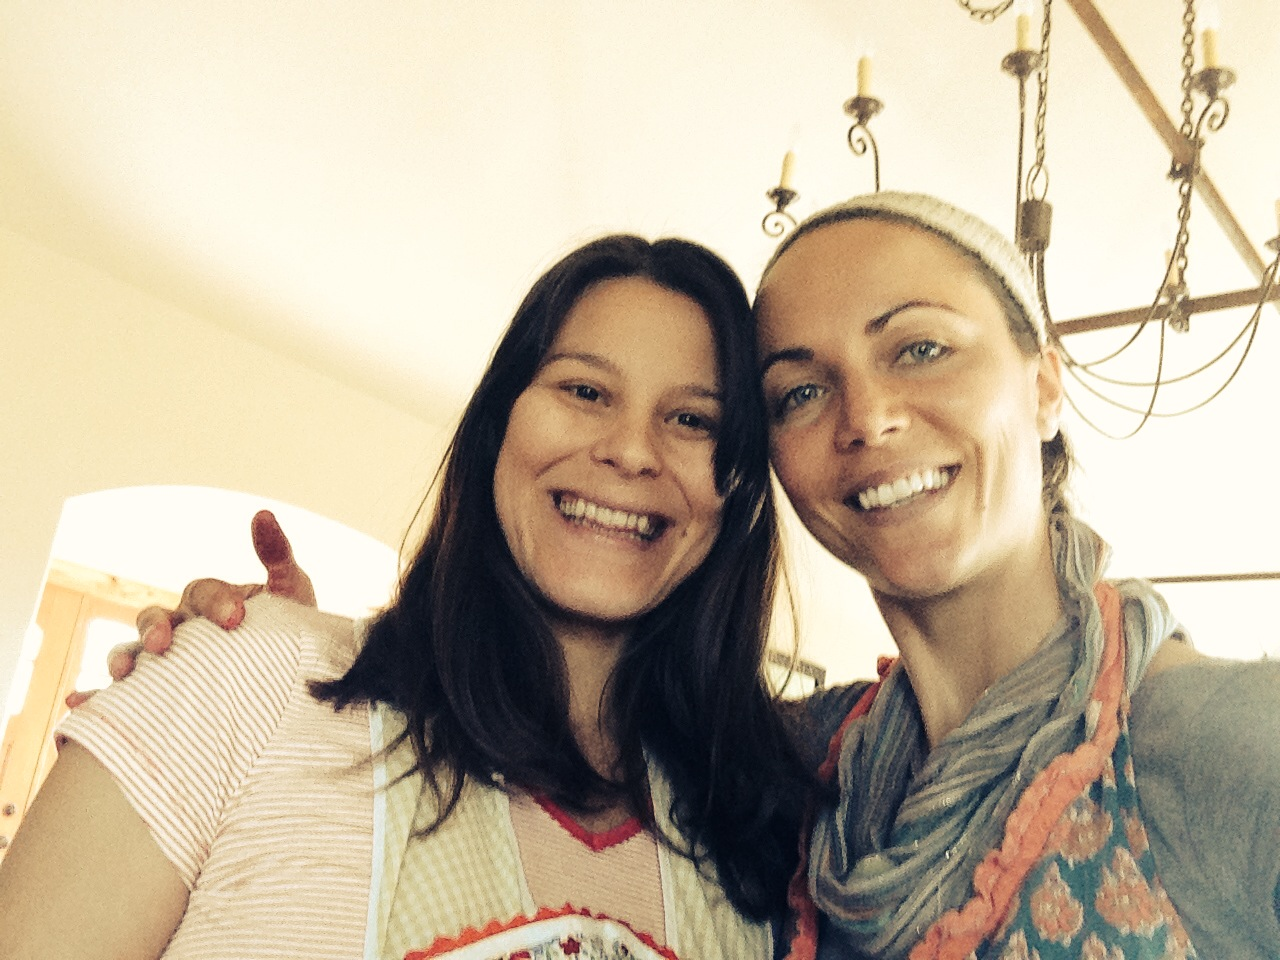 Tamlin and me, having a domestic goddess day in our frilly aprons. She taught me how to can beets. So fun!